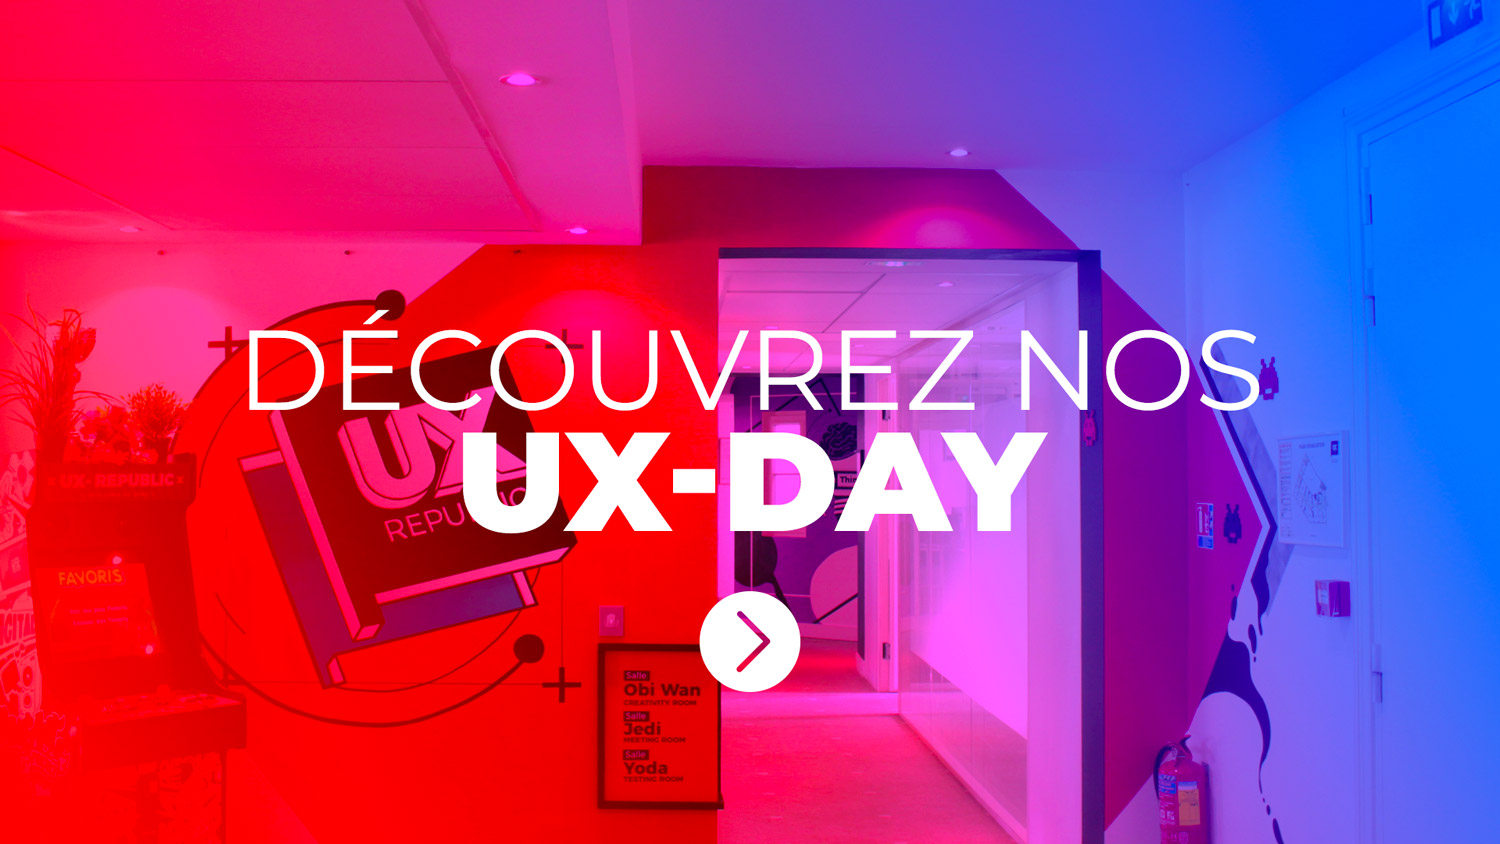 UX-DAY